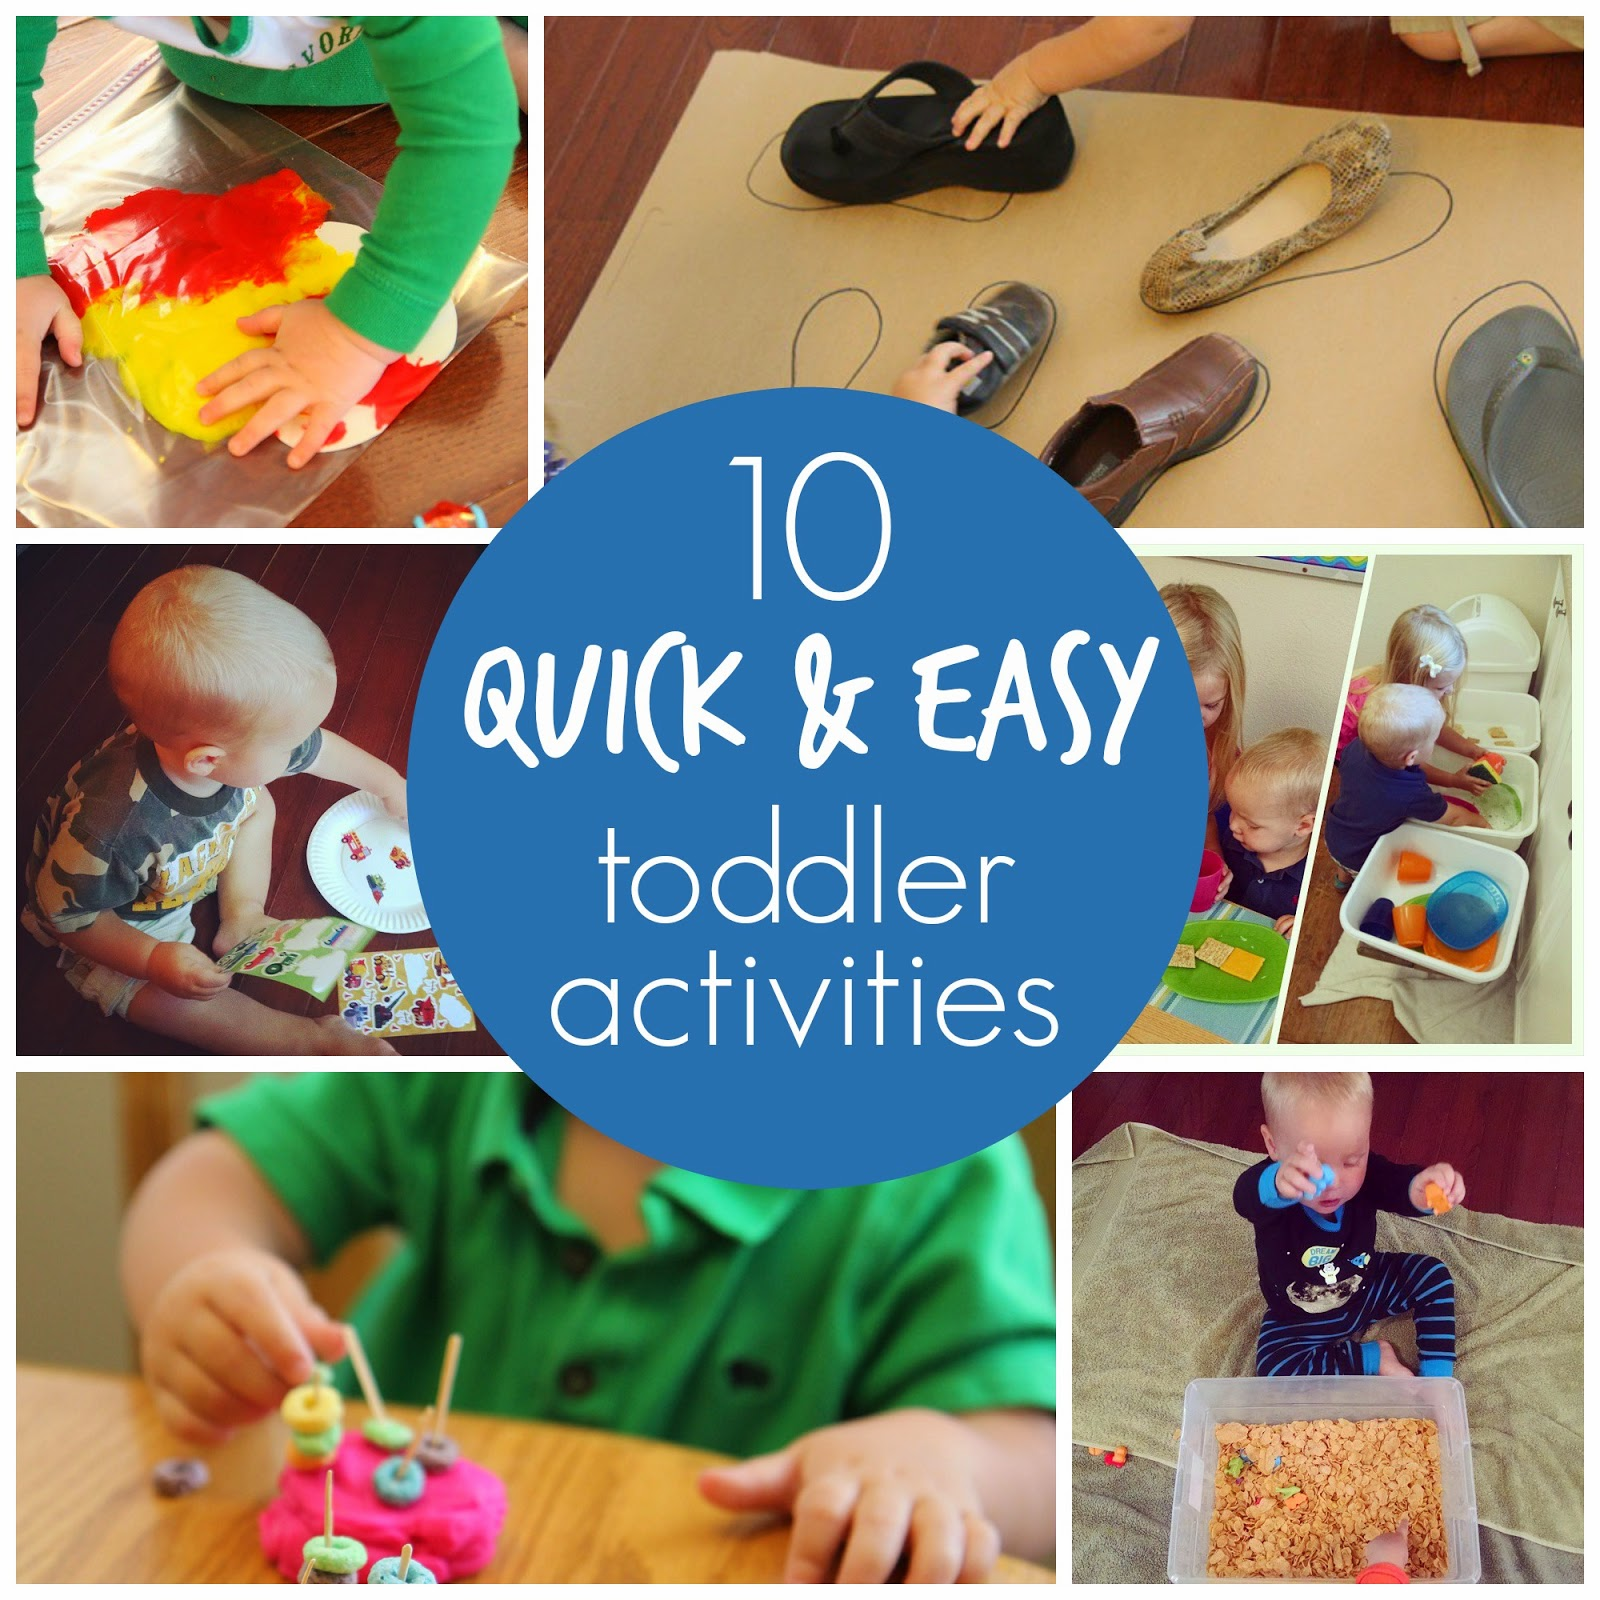 Toddler Approved 10 Days Of Simple Toddler Activities Challenge